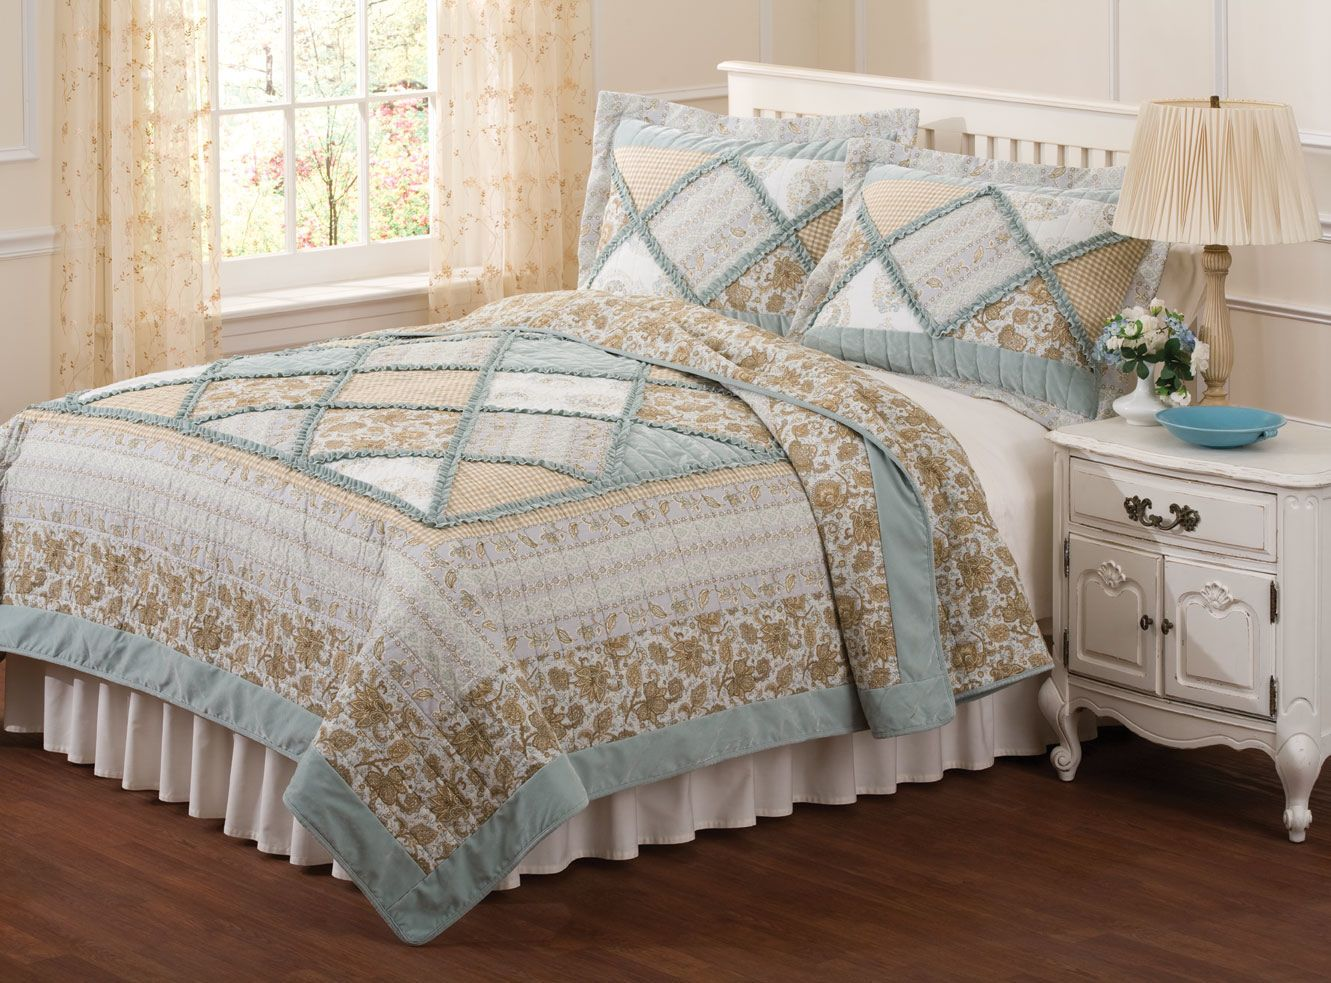 Comfortable bed sheets quilts pinterest for French country style beds